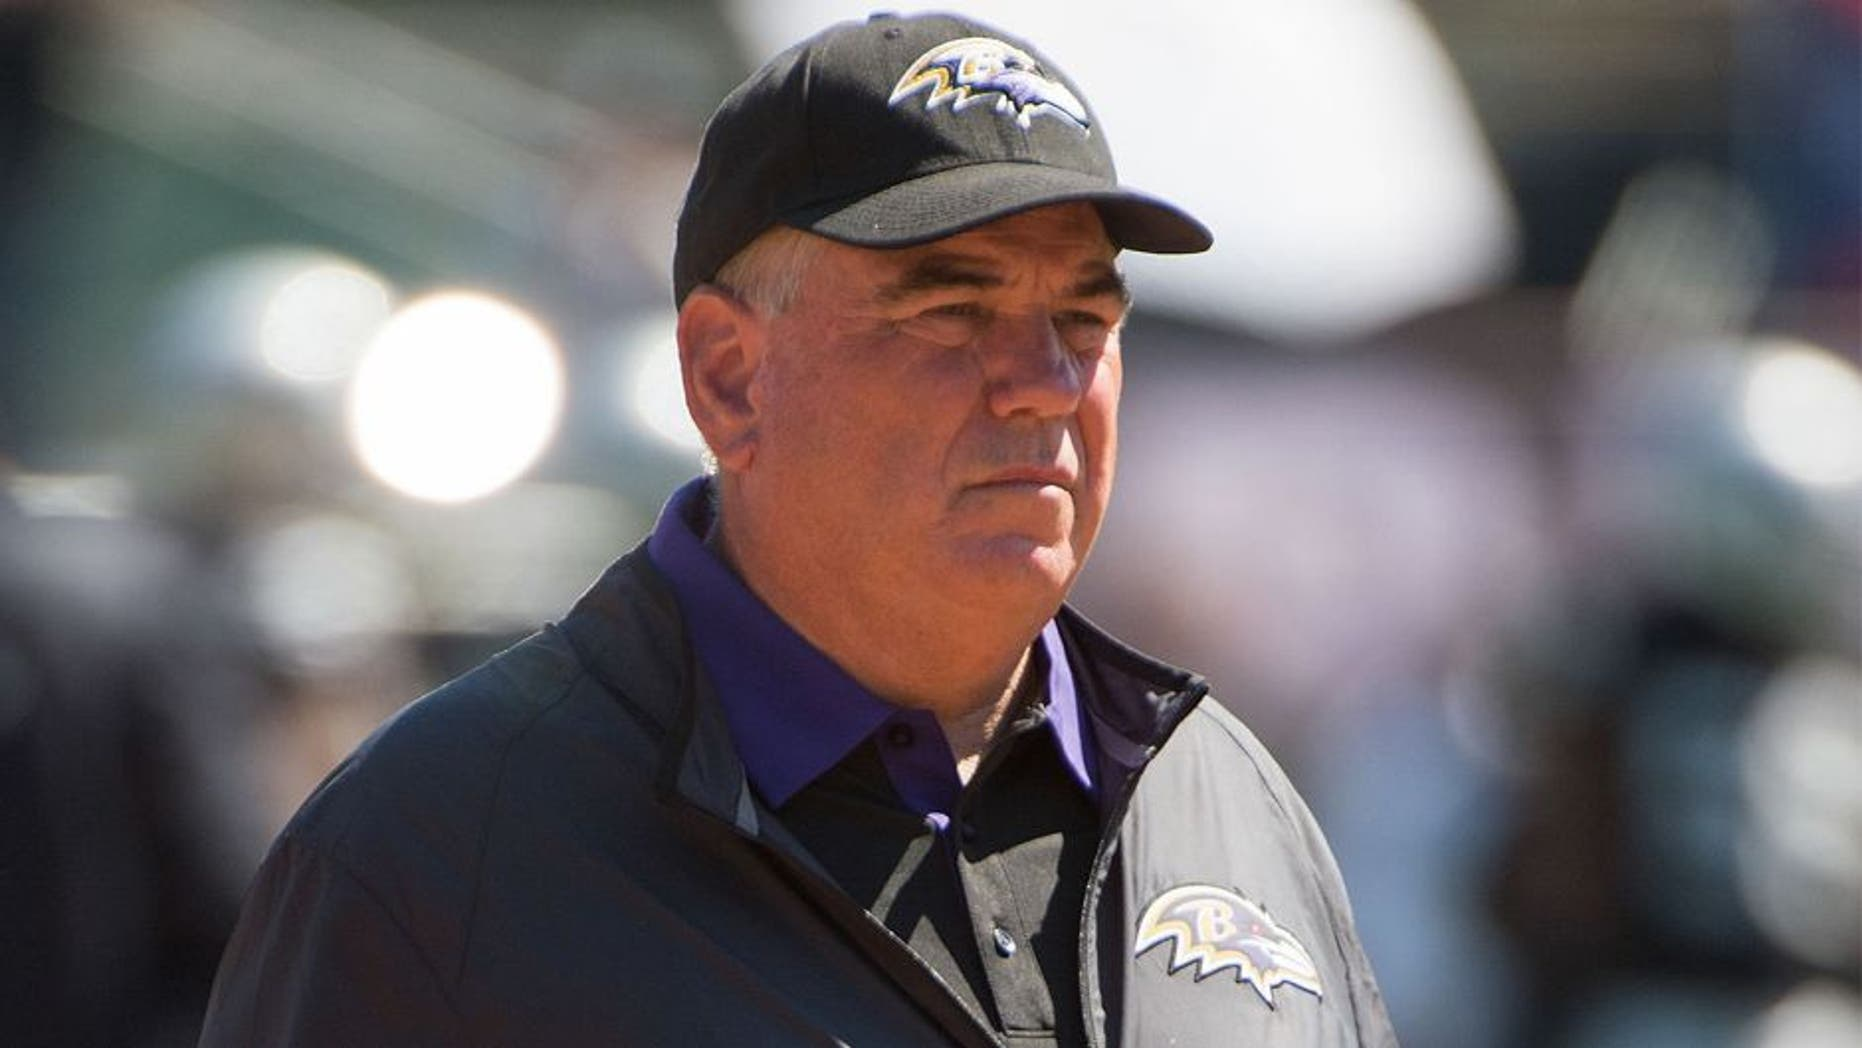 September 20, 2015; Oakland, CA, USA; Baltimore Ravens defensive coordinator Dean Pees before the game against the Oakland Raiders at O.co Coliseum. The Raiders defeated the Ravens 37-33. Mandatory Credit: Kyle Terada-USA TODAY Sports